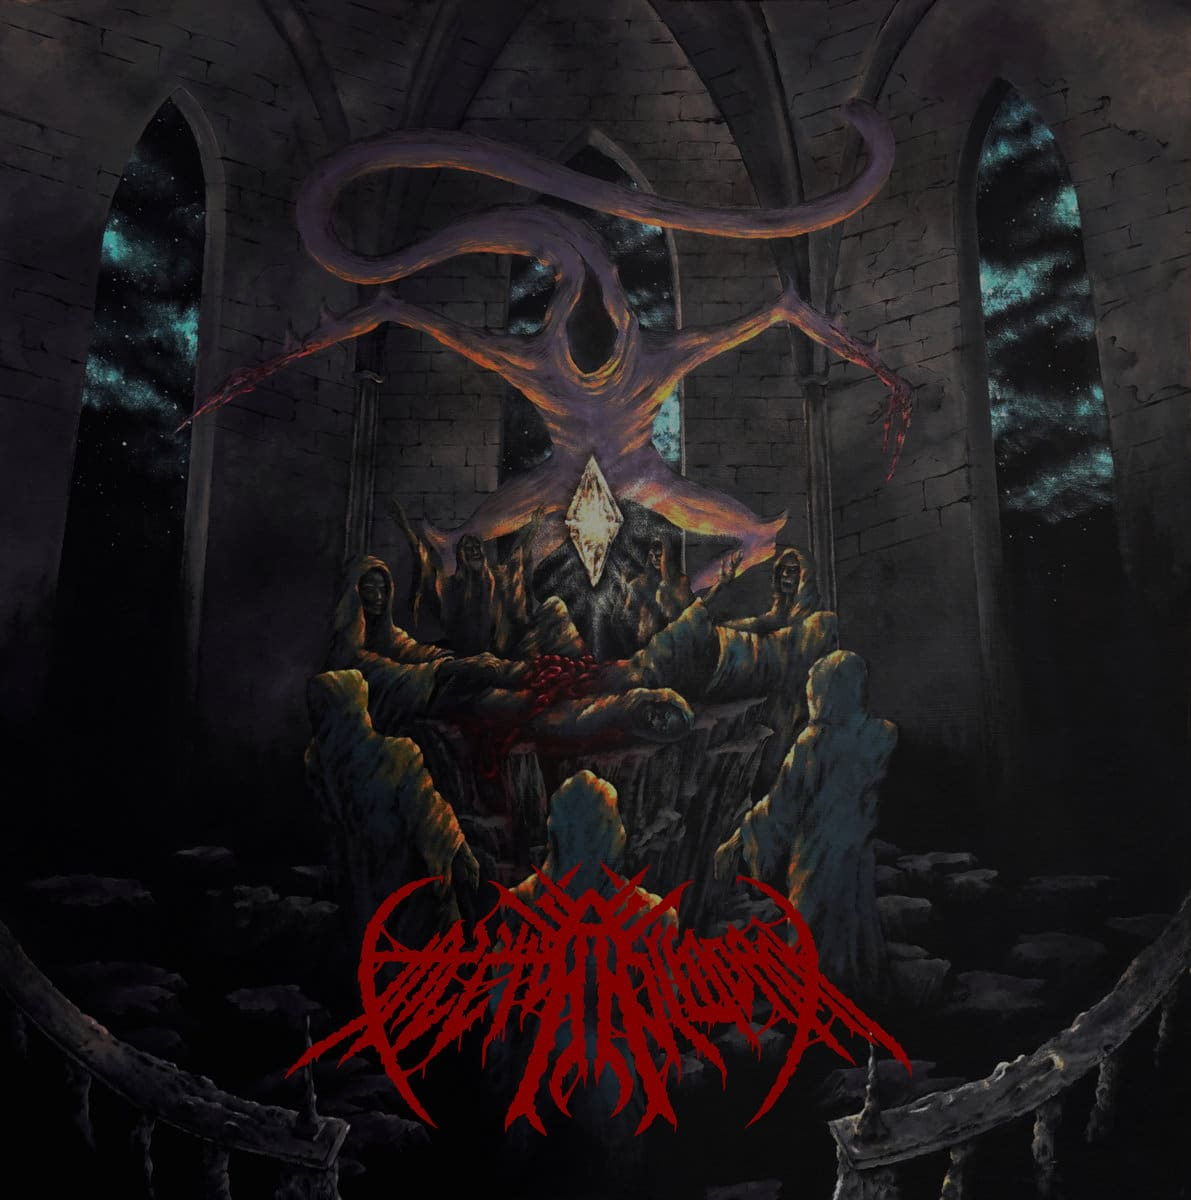 Abyssal Ascendant - Deacons of Abhorrence